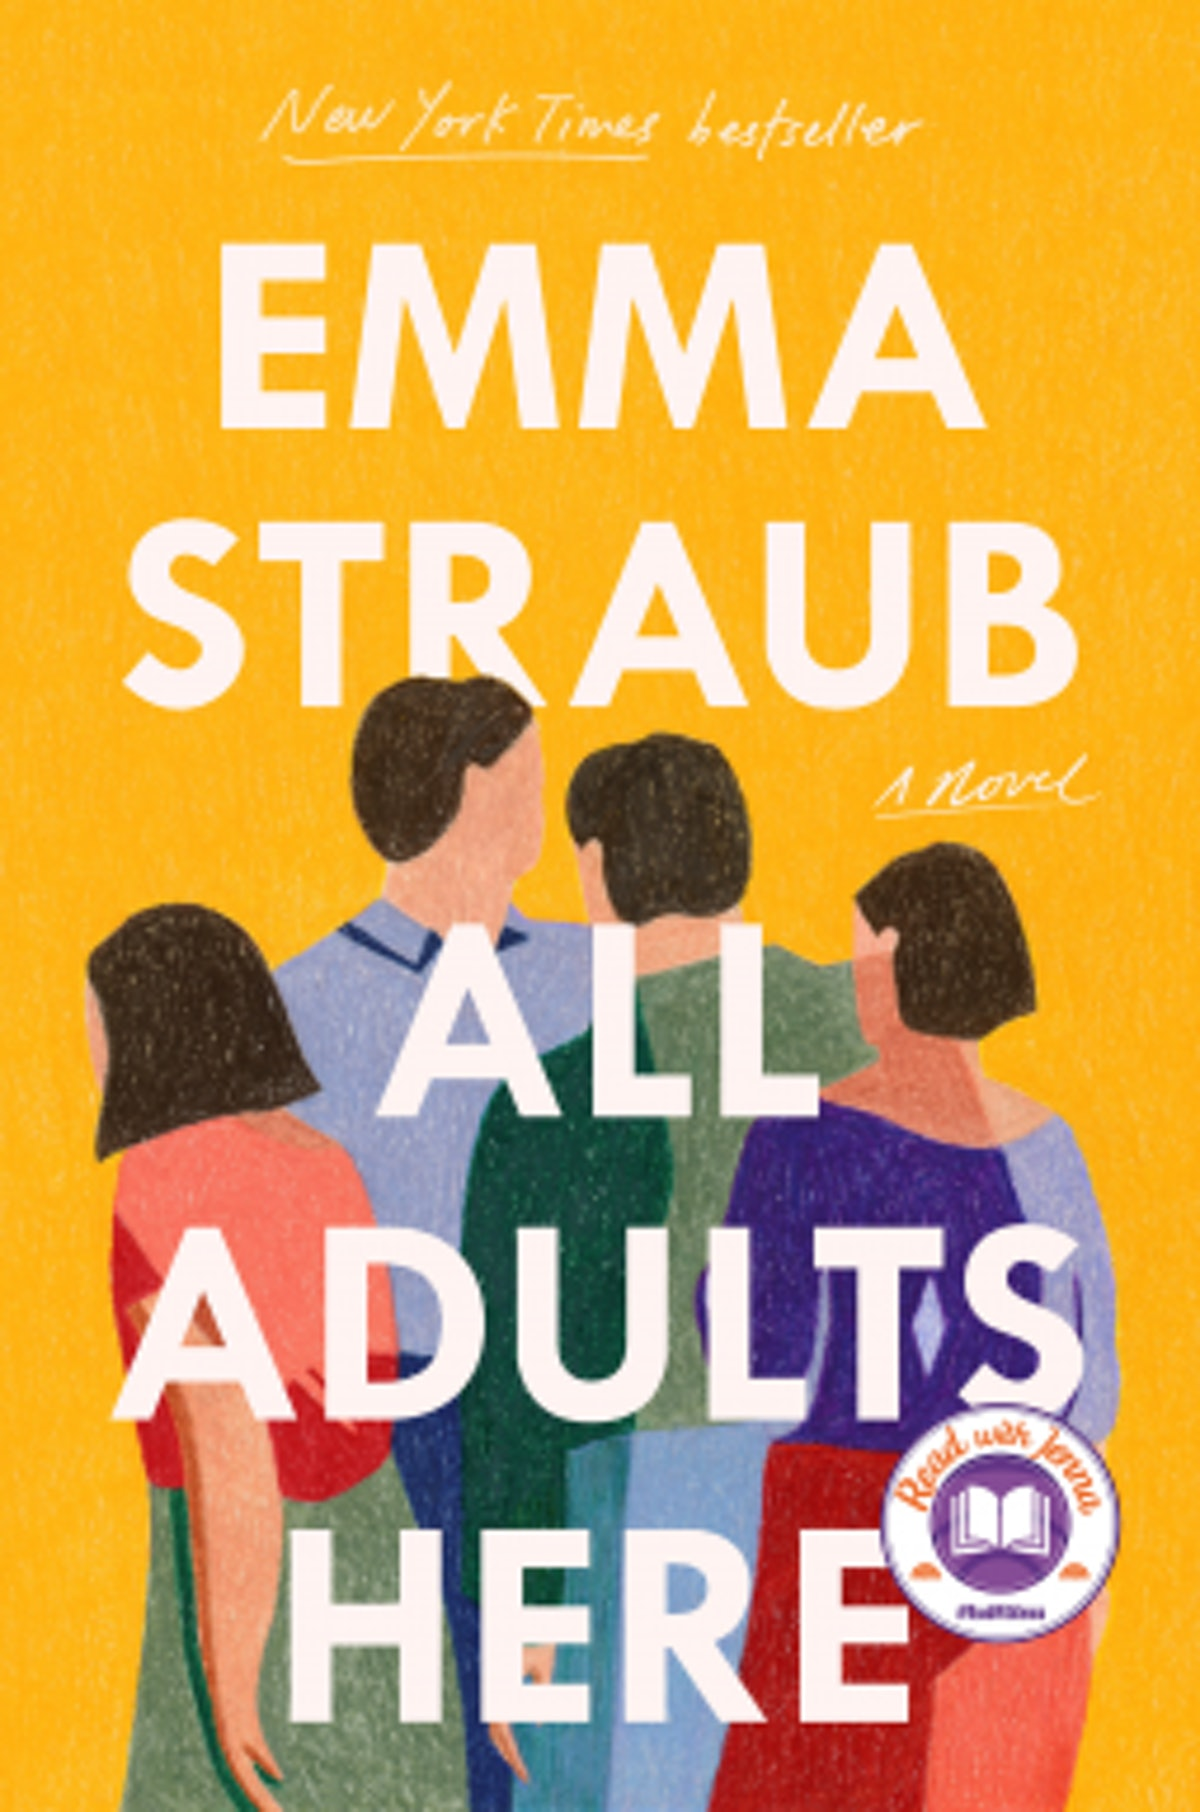 'All Adults Here' by Emma Straub